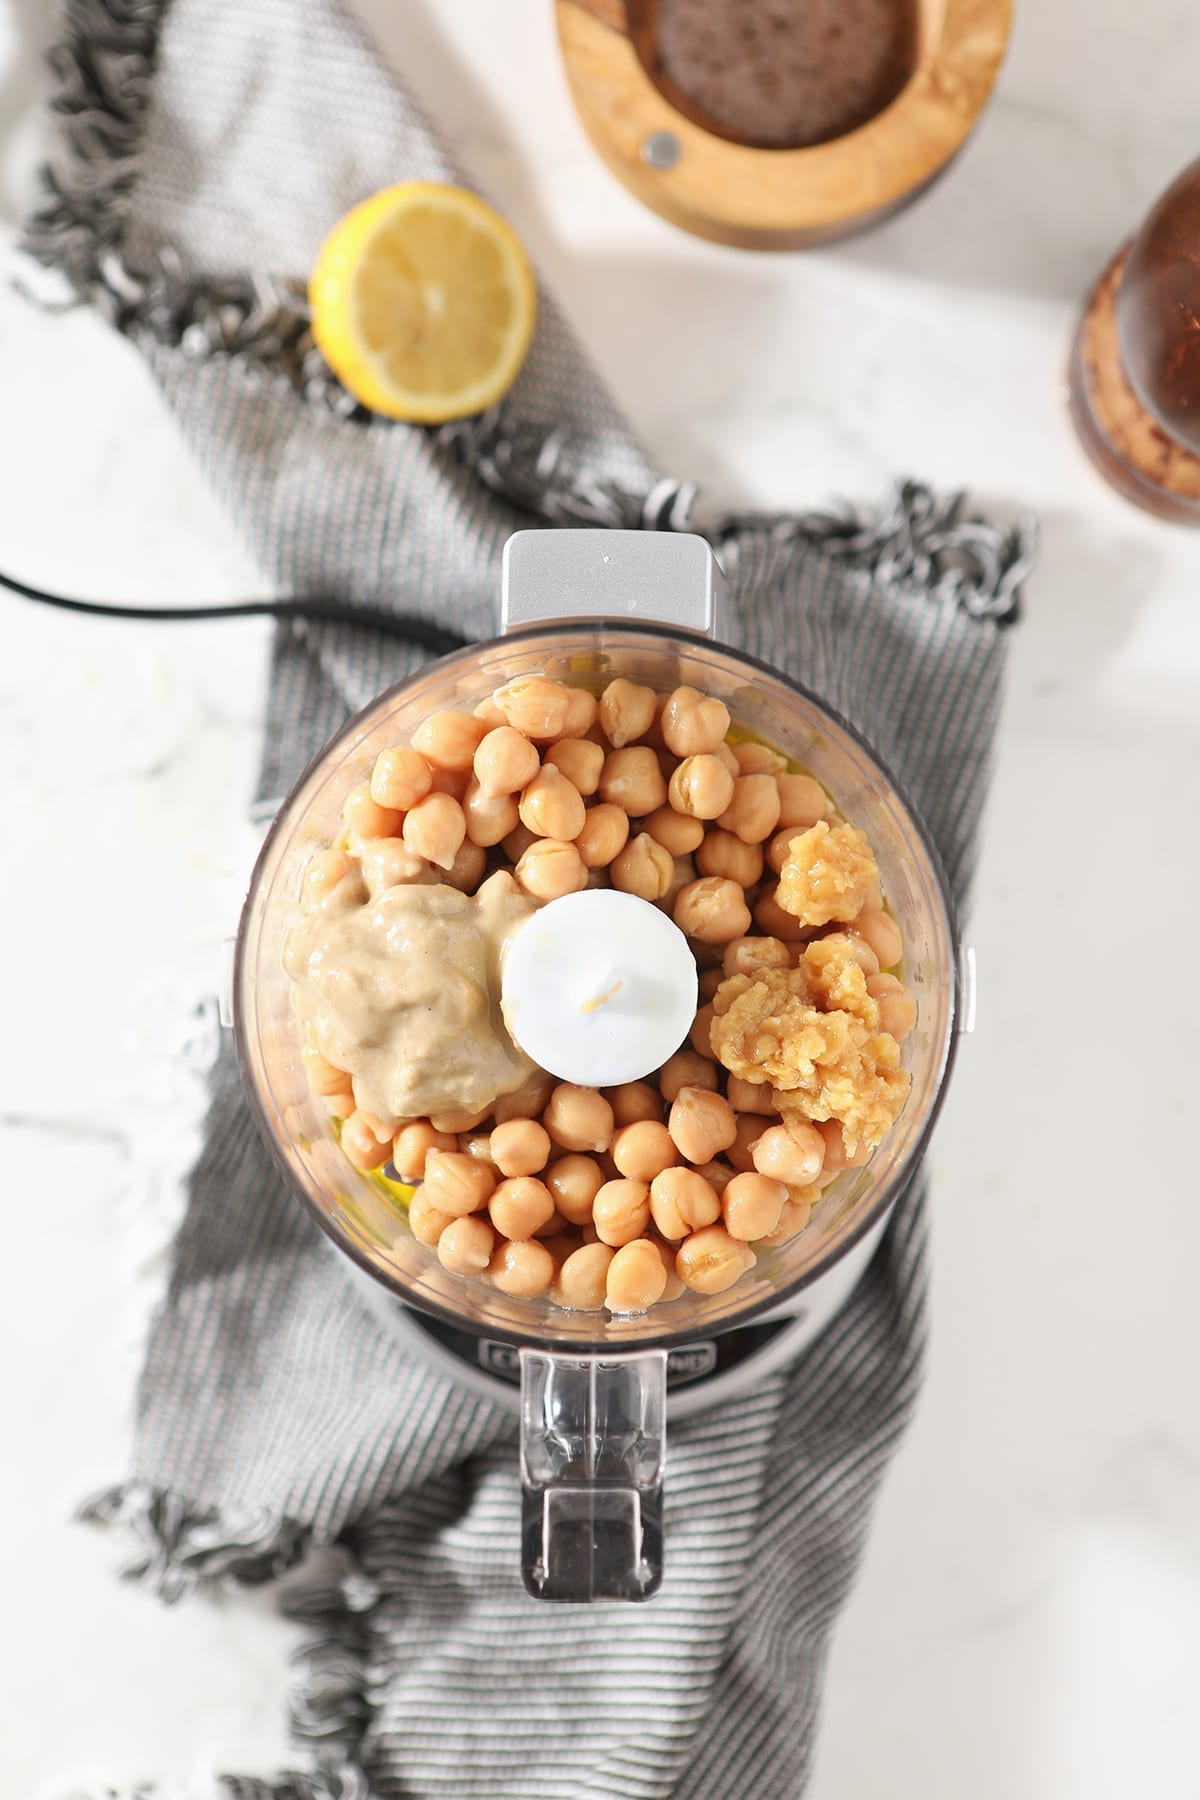 Tahini and garlic sit on top of whole chickpeas in a food processor on a striped towel on marble